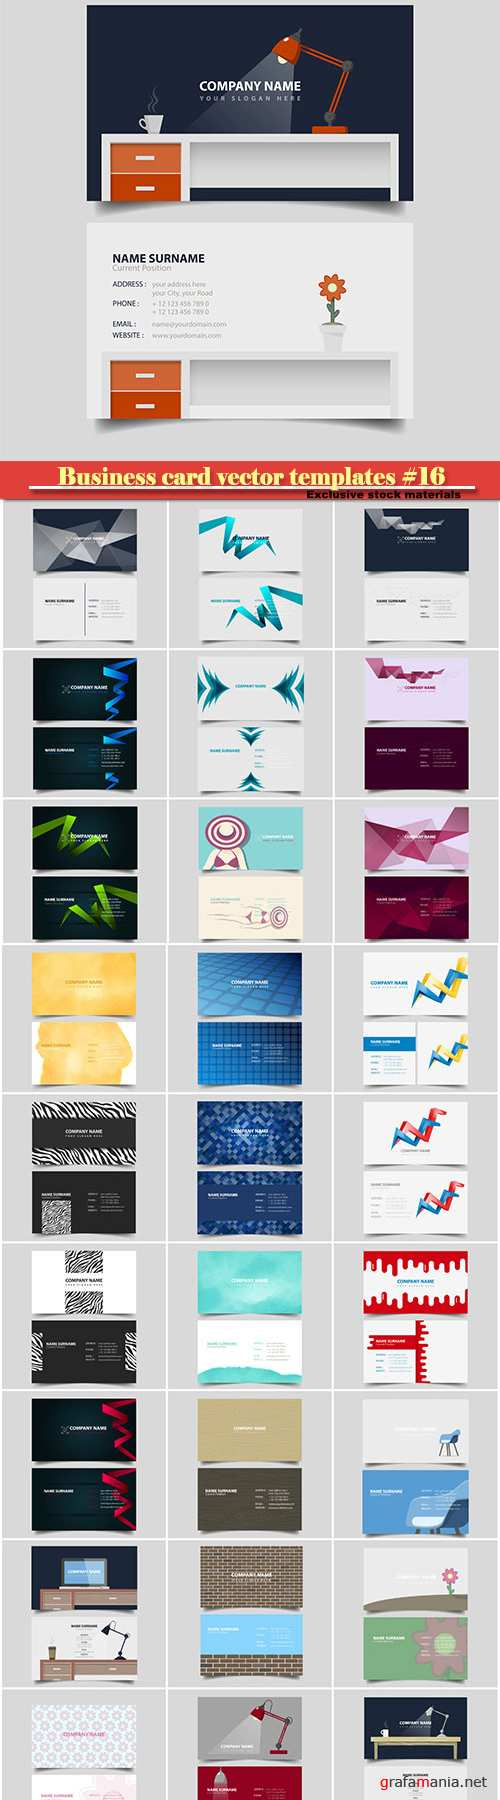 Business card vector templates #16